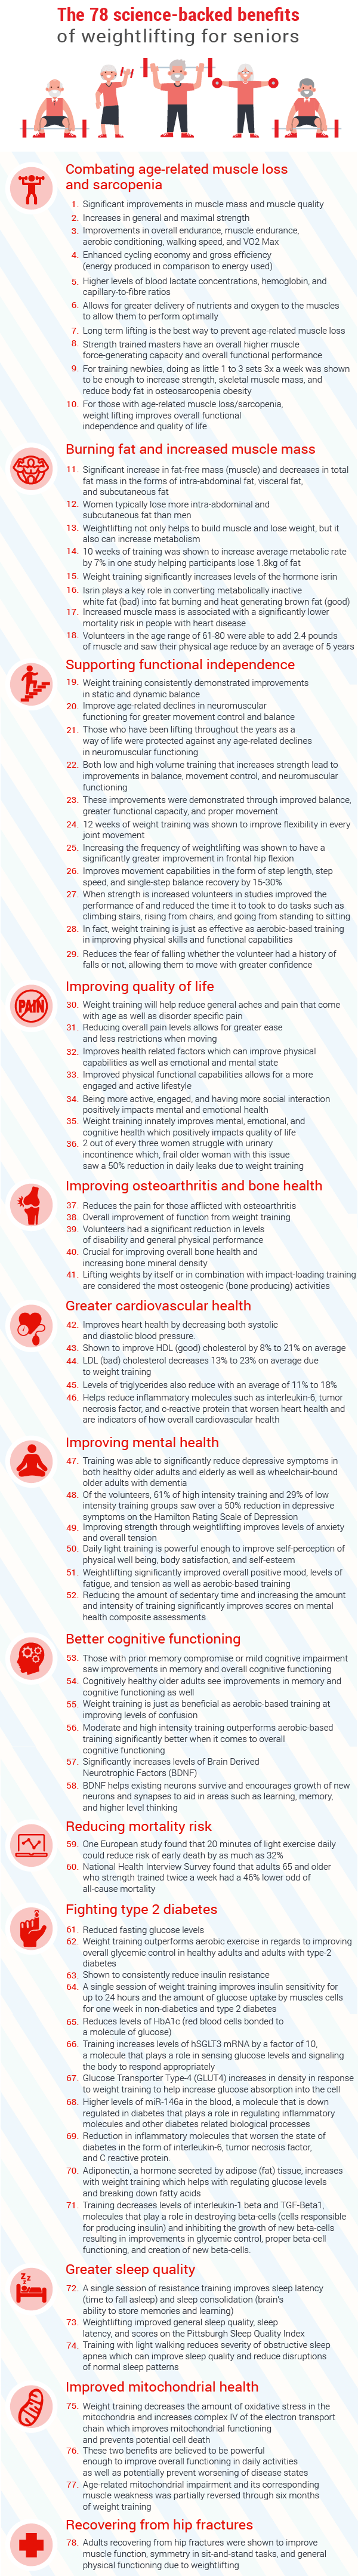 78-benefits-of-weightlifting-for-seniors